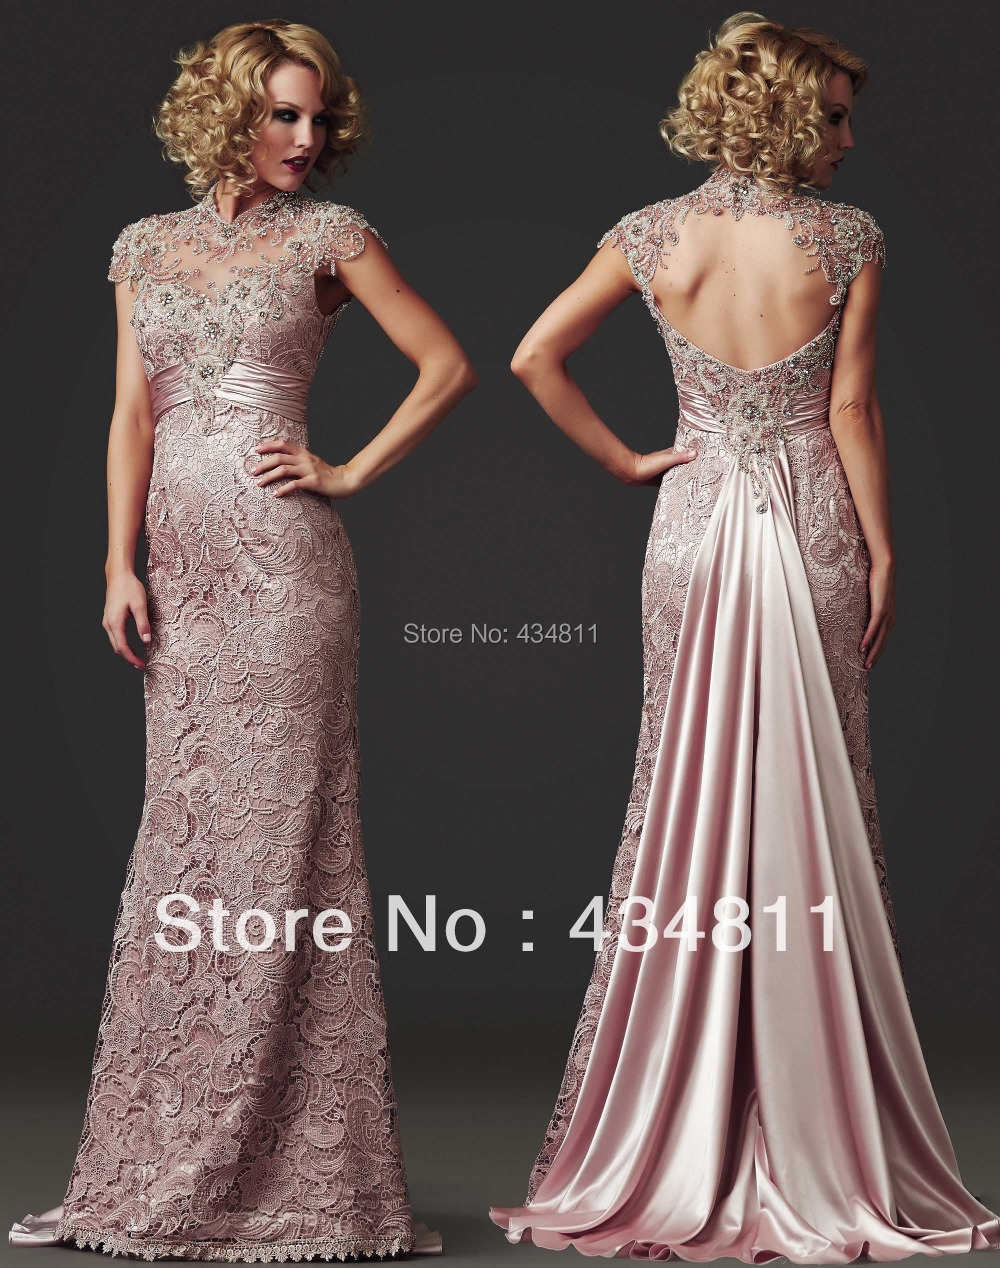 Elegant Sheer High Colla Beaded/Crystal Lace 2014 Light Pink Evening ...